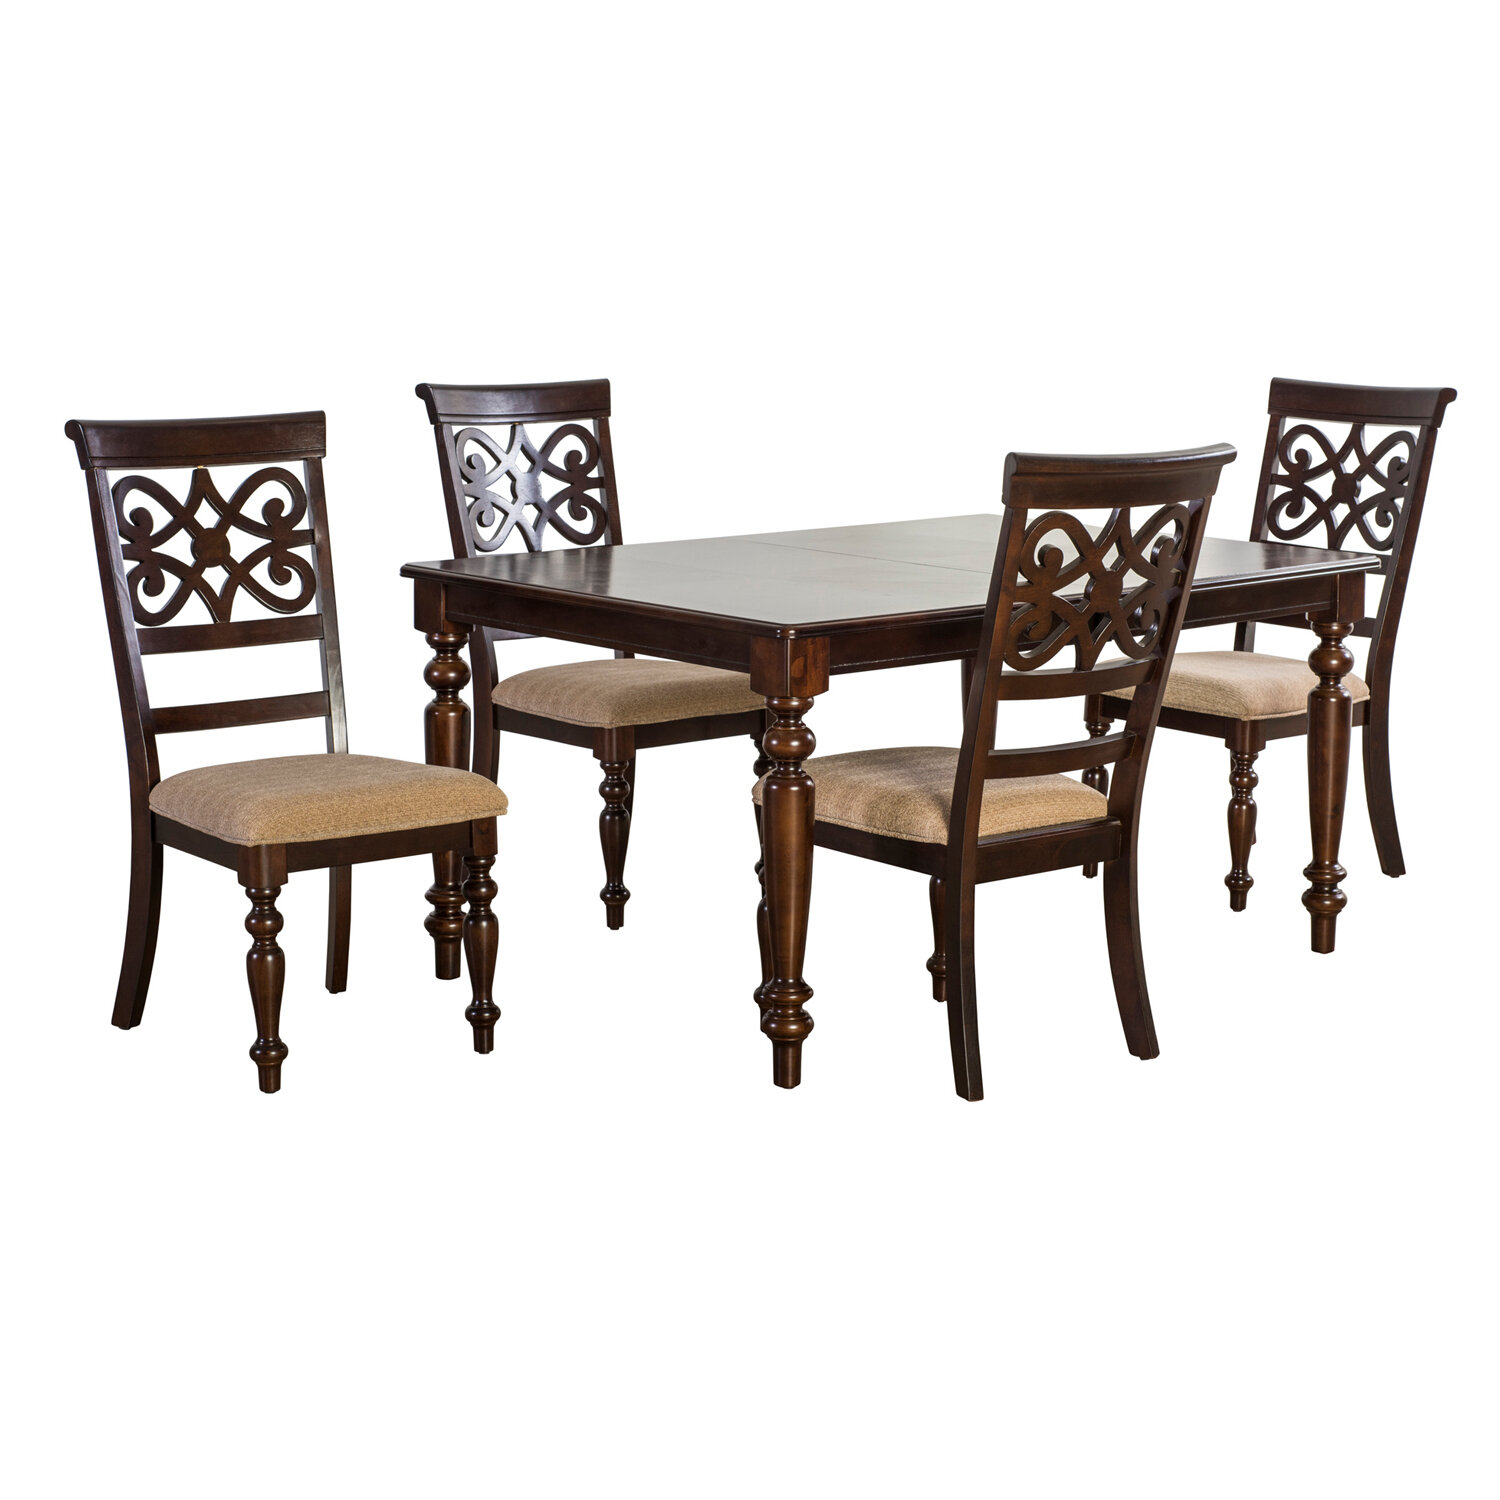 Laconia 5 Piece Extendable Dining Set Regarding 2017 Laconia 7 Pieces Solid Wood Dining Sets (Set Of 7) (Photo 8 of 20)